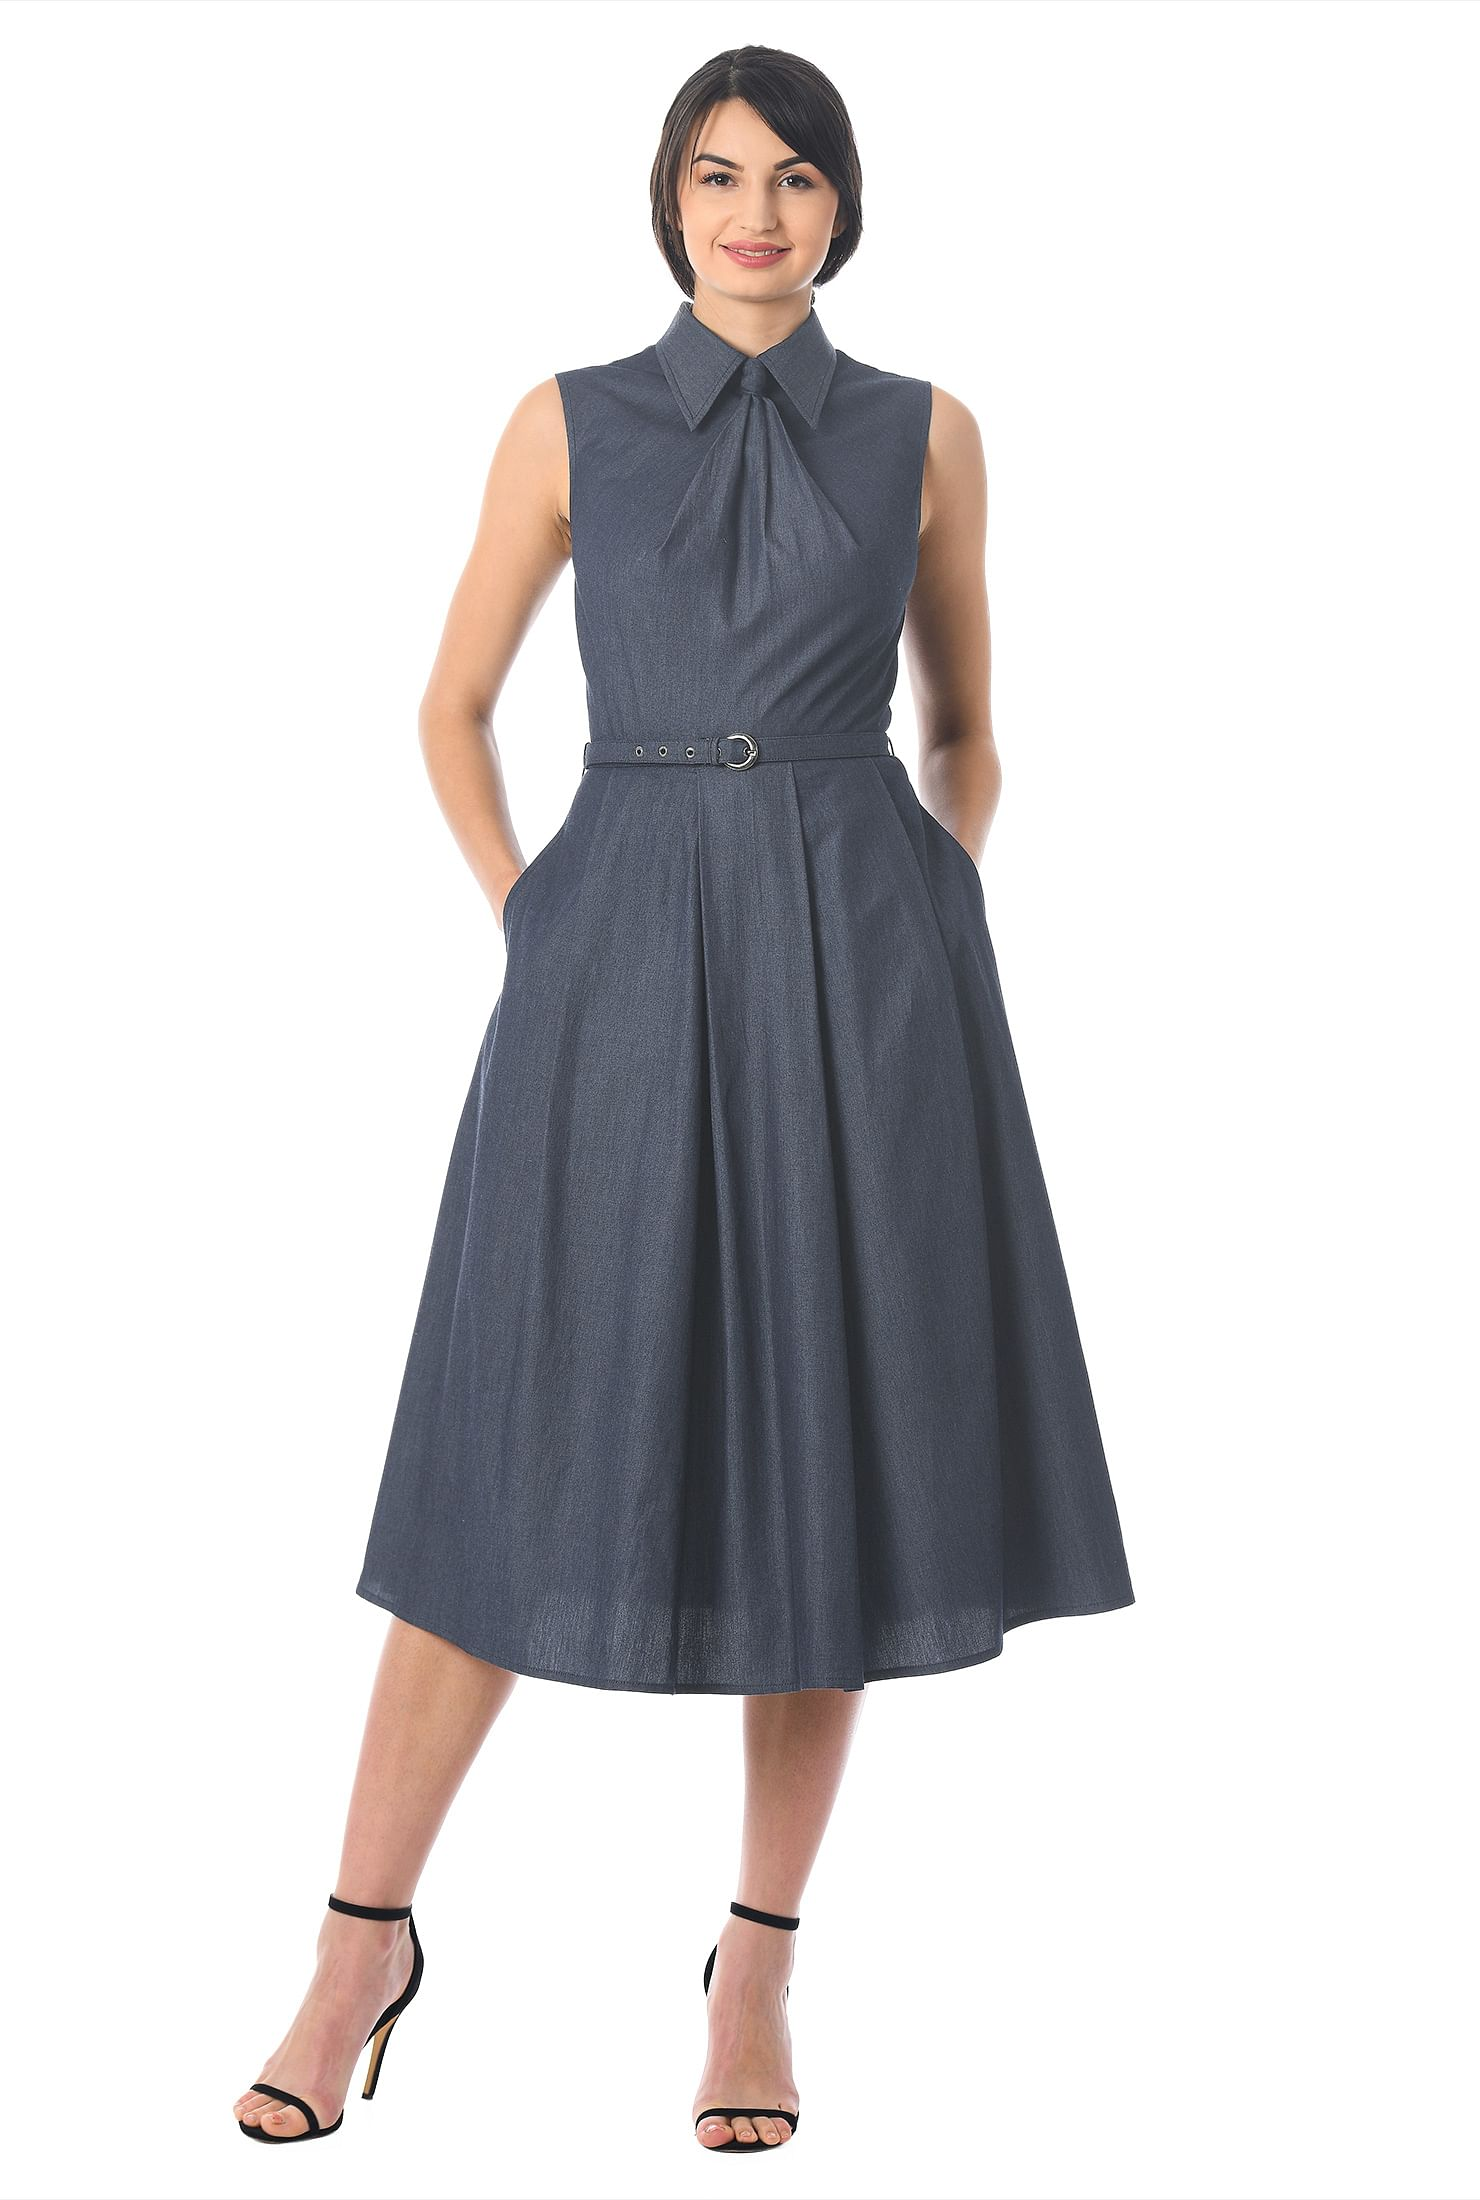 eShakti Women's Pleat neck cotton chambray dress